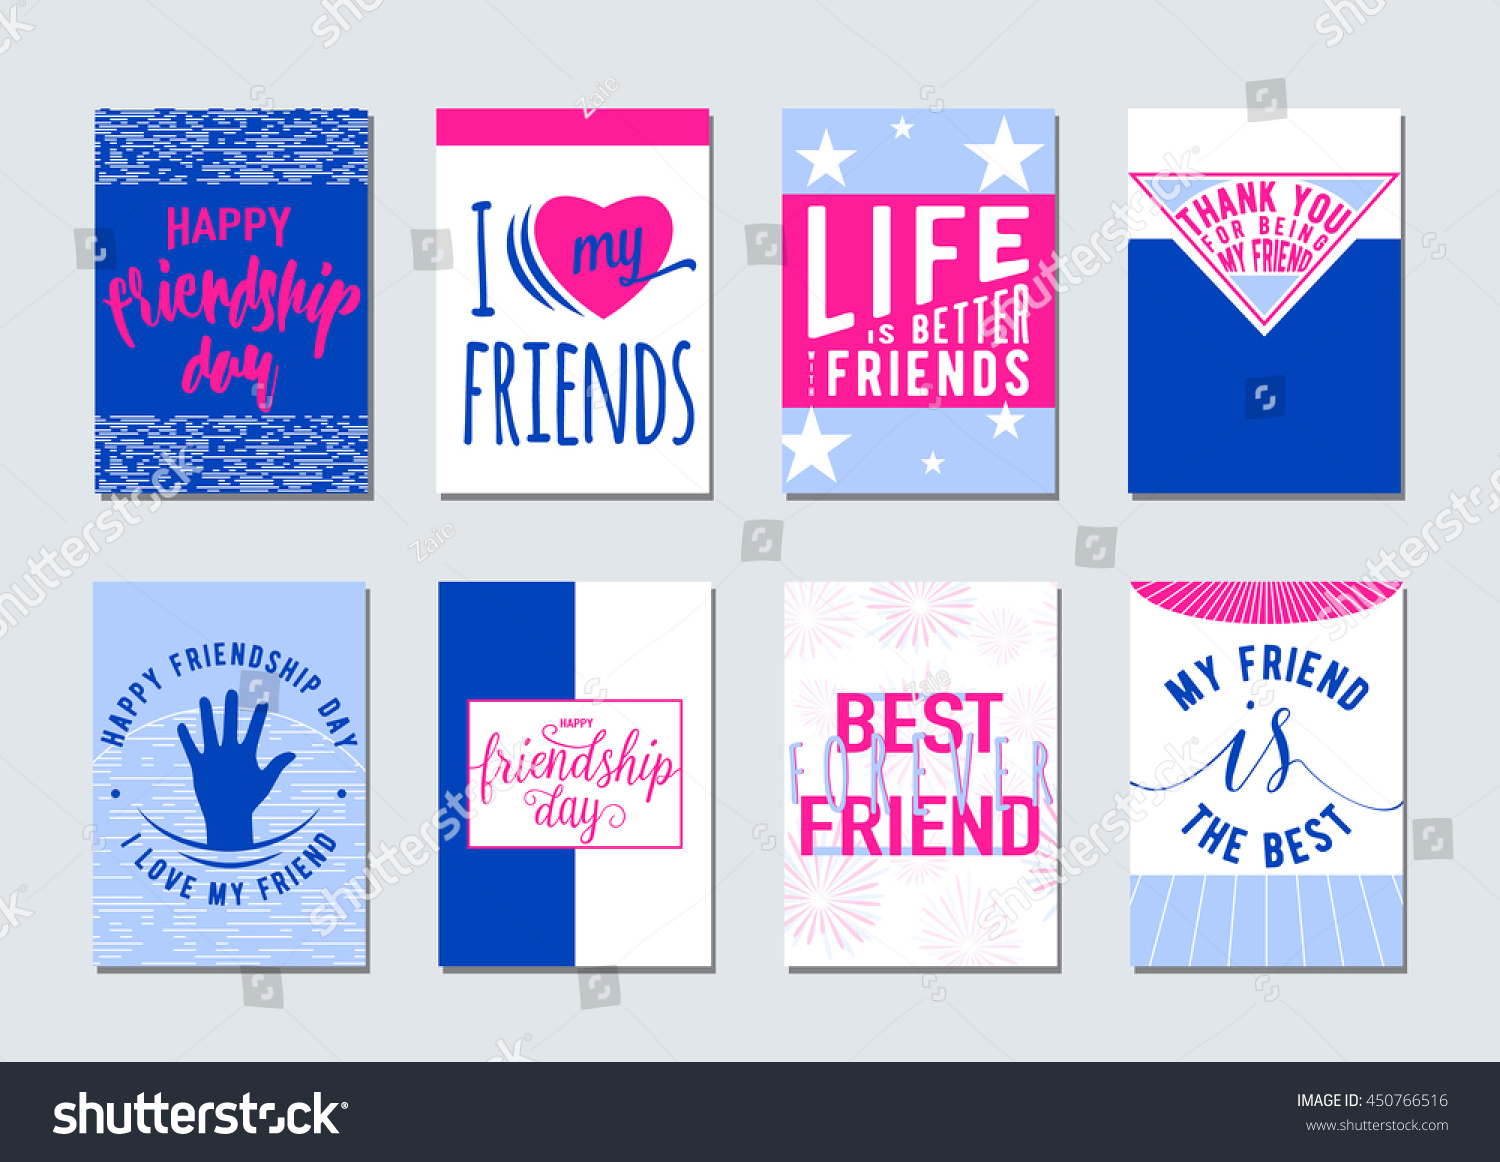 Quote To Friends About Friendship Vector Illustration Friendship Day Typography Background Stock